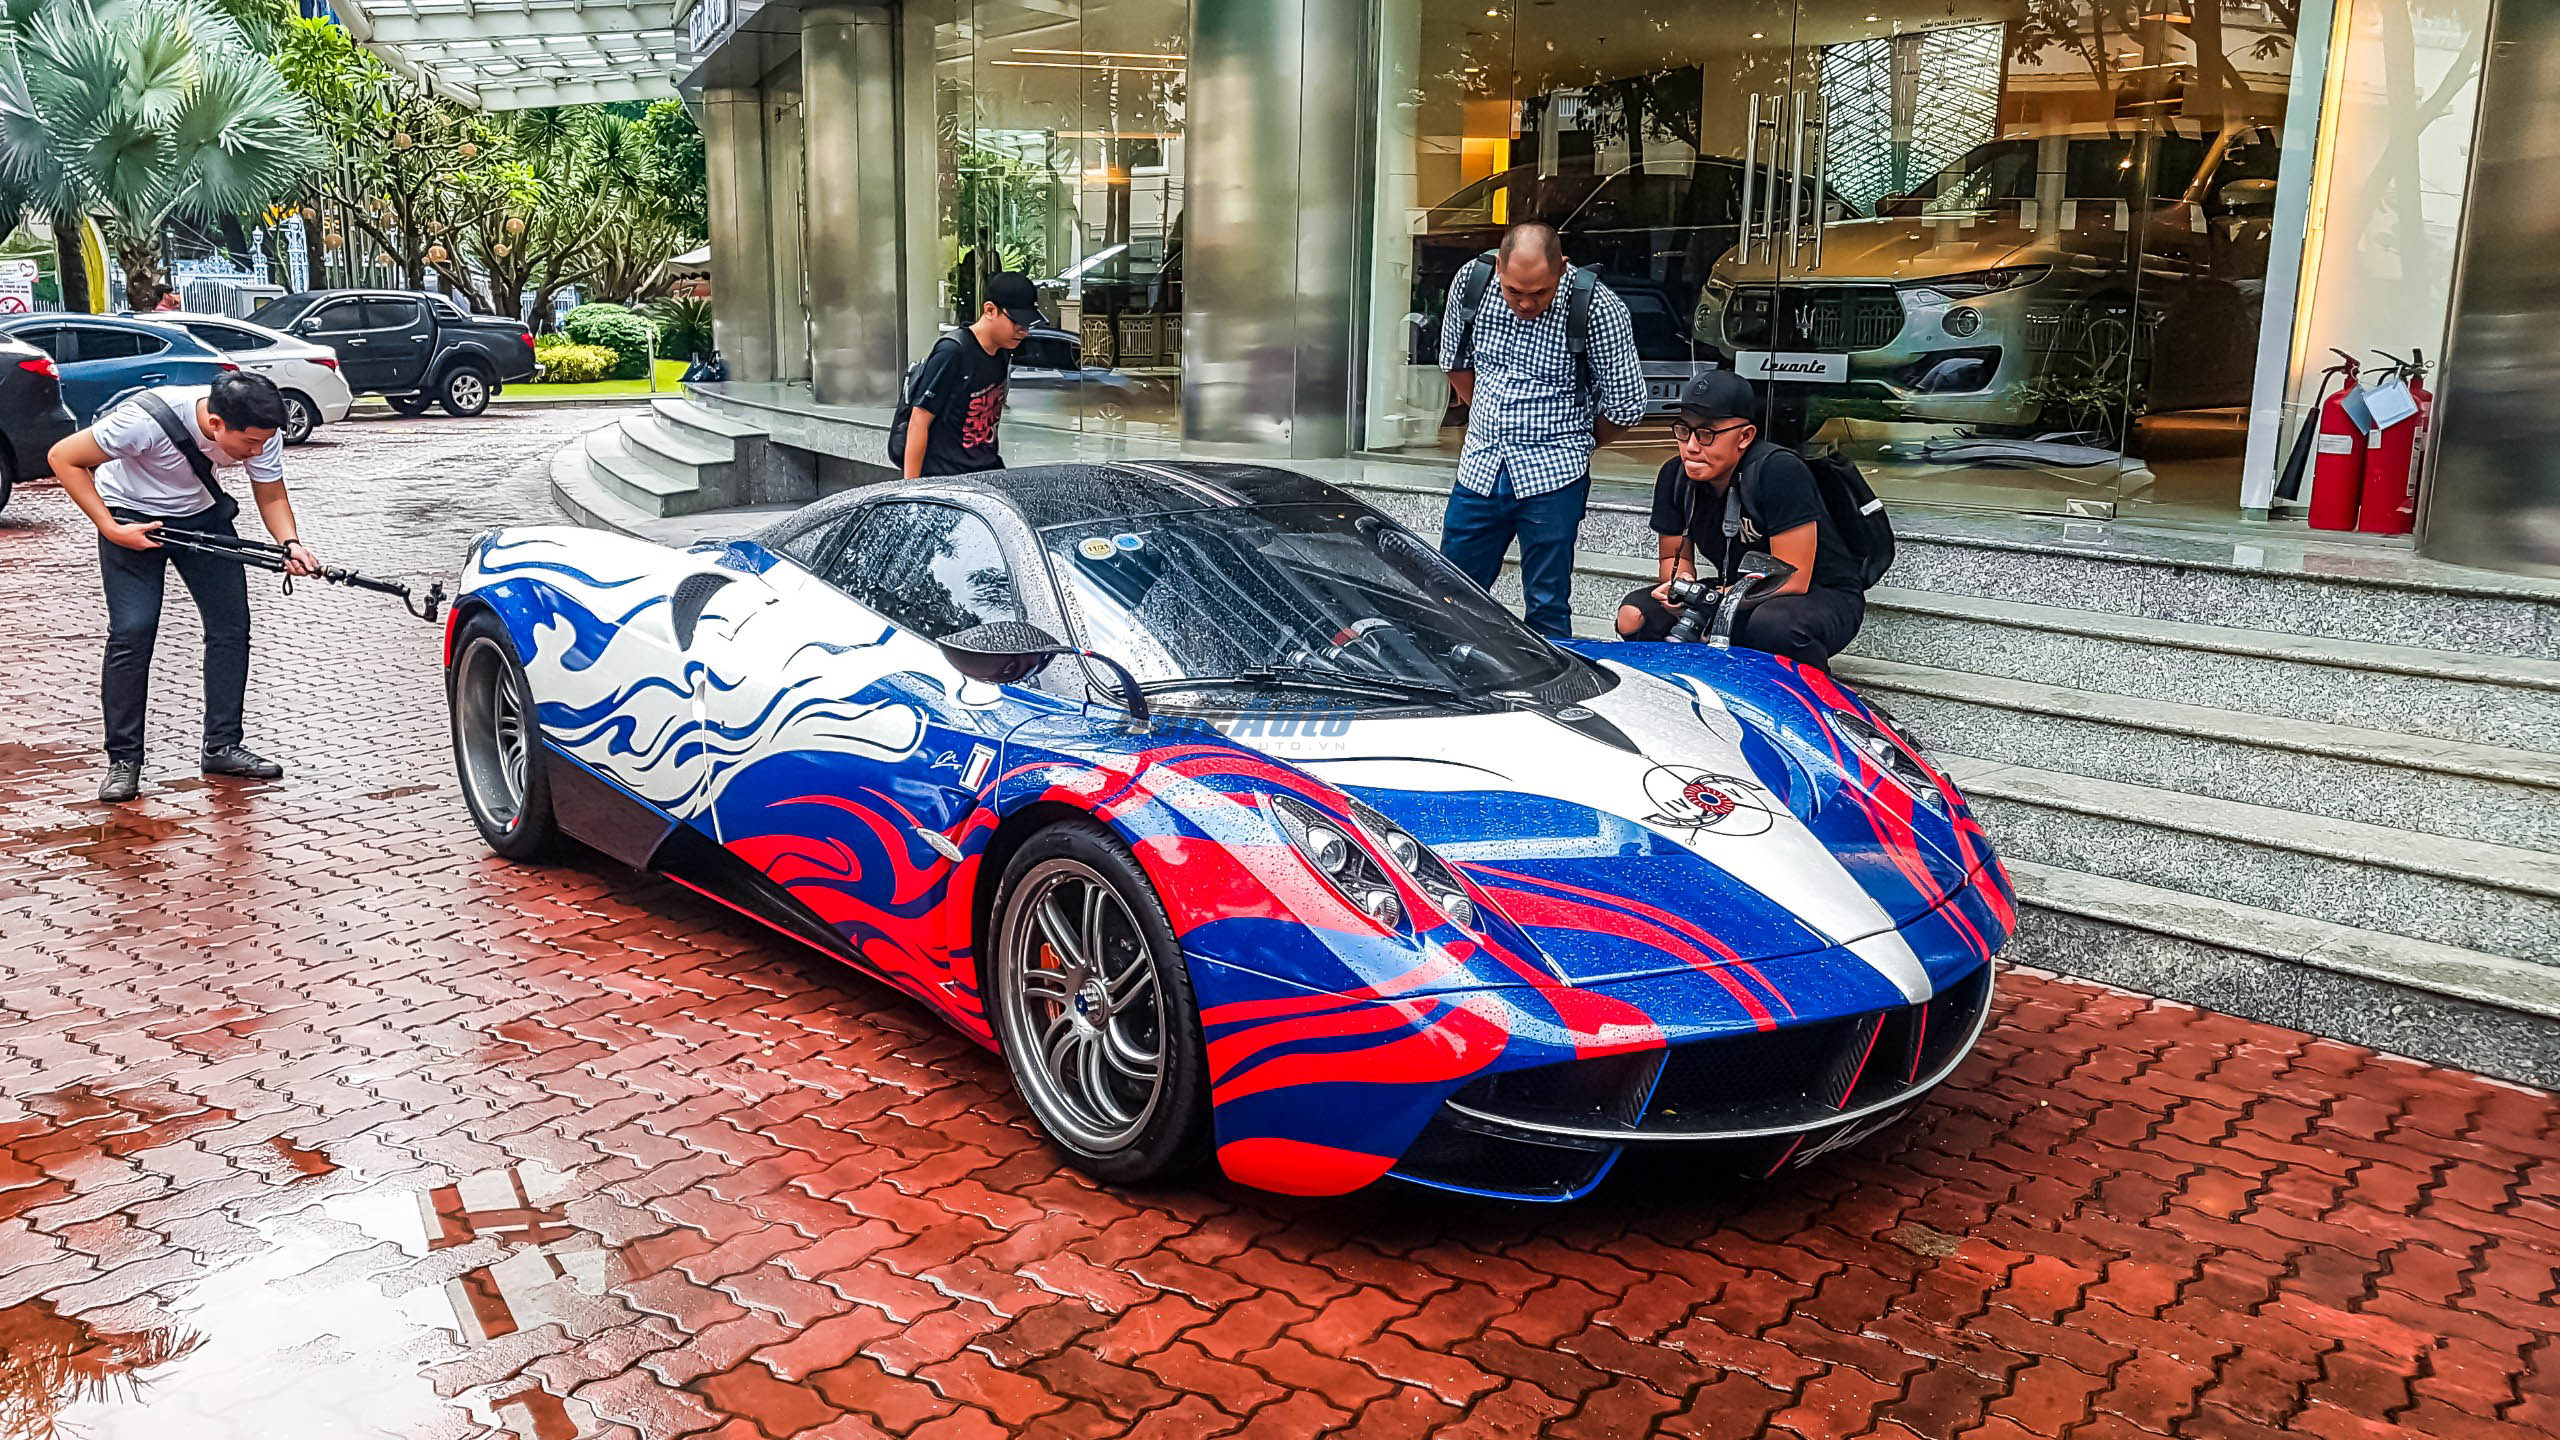 paganihuayra-cafeautovn-29